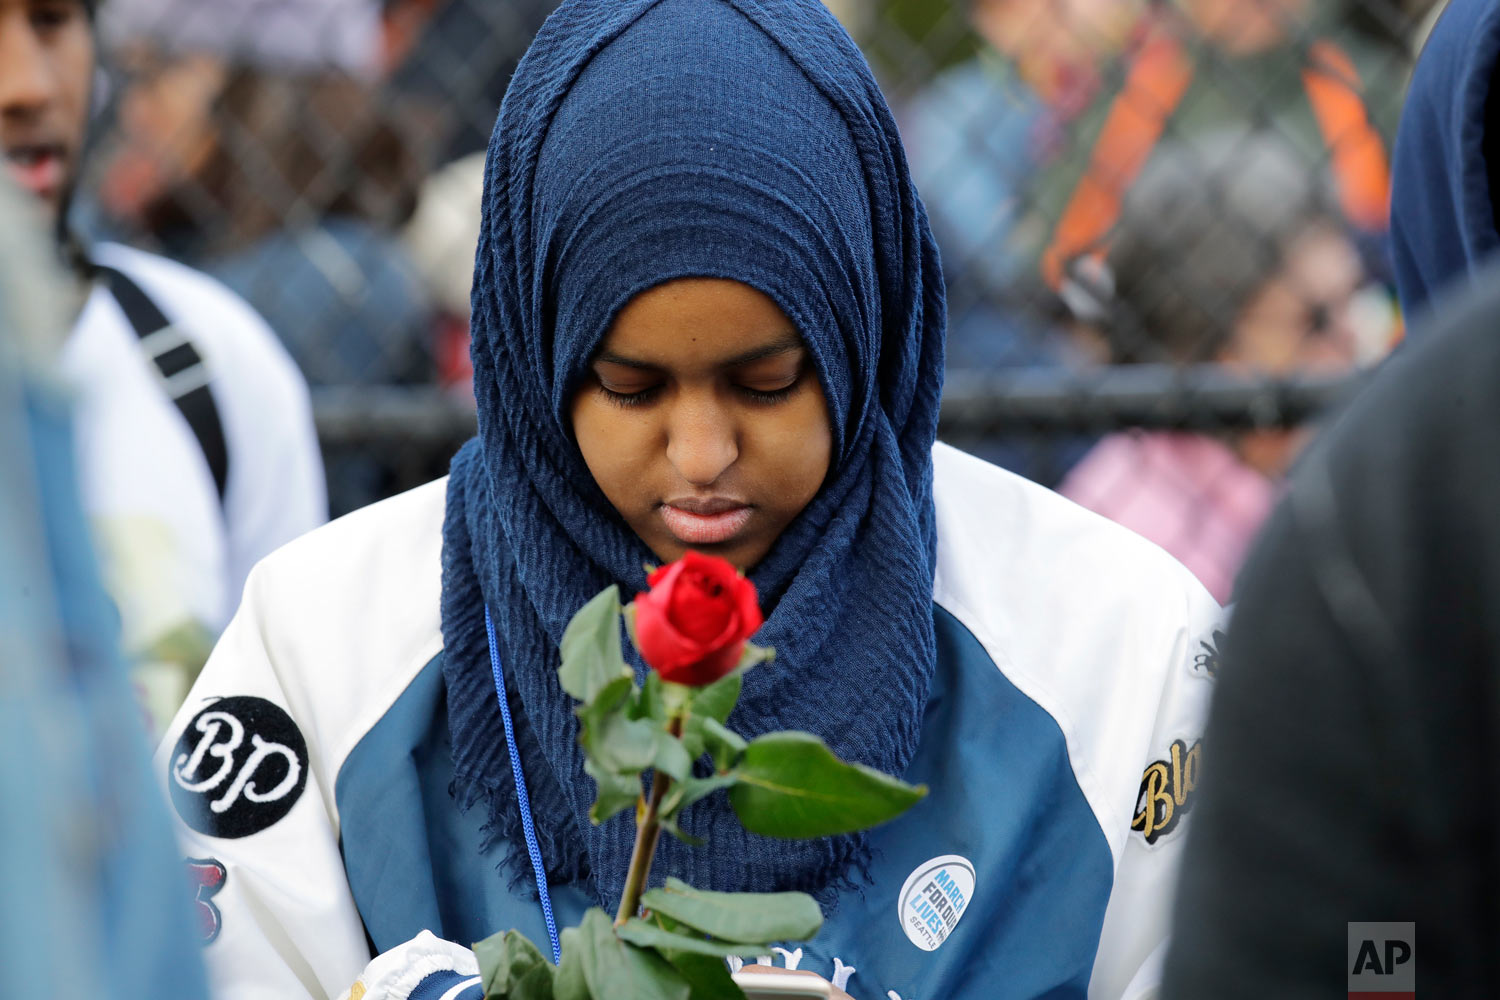 Naj Ali, a high school senior, holds a rose in memory of a person lost to gun violence during a rally before a march in favor of gun control Saturday, March 24, 2018, in Seattle.   Summoned to action by student survivors from Marjory Stoneman Douglas High School in Parkland, Fla., hundreds of thousands of teenagers and their supporters rallied in the nation's capital and cities across the U.S. on Saturday to press for gun control. (AP Photo/Elaine Thompson)